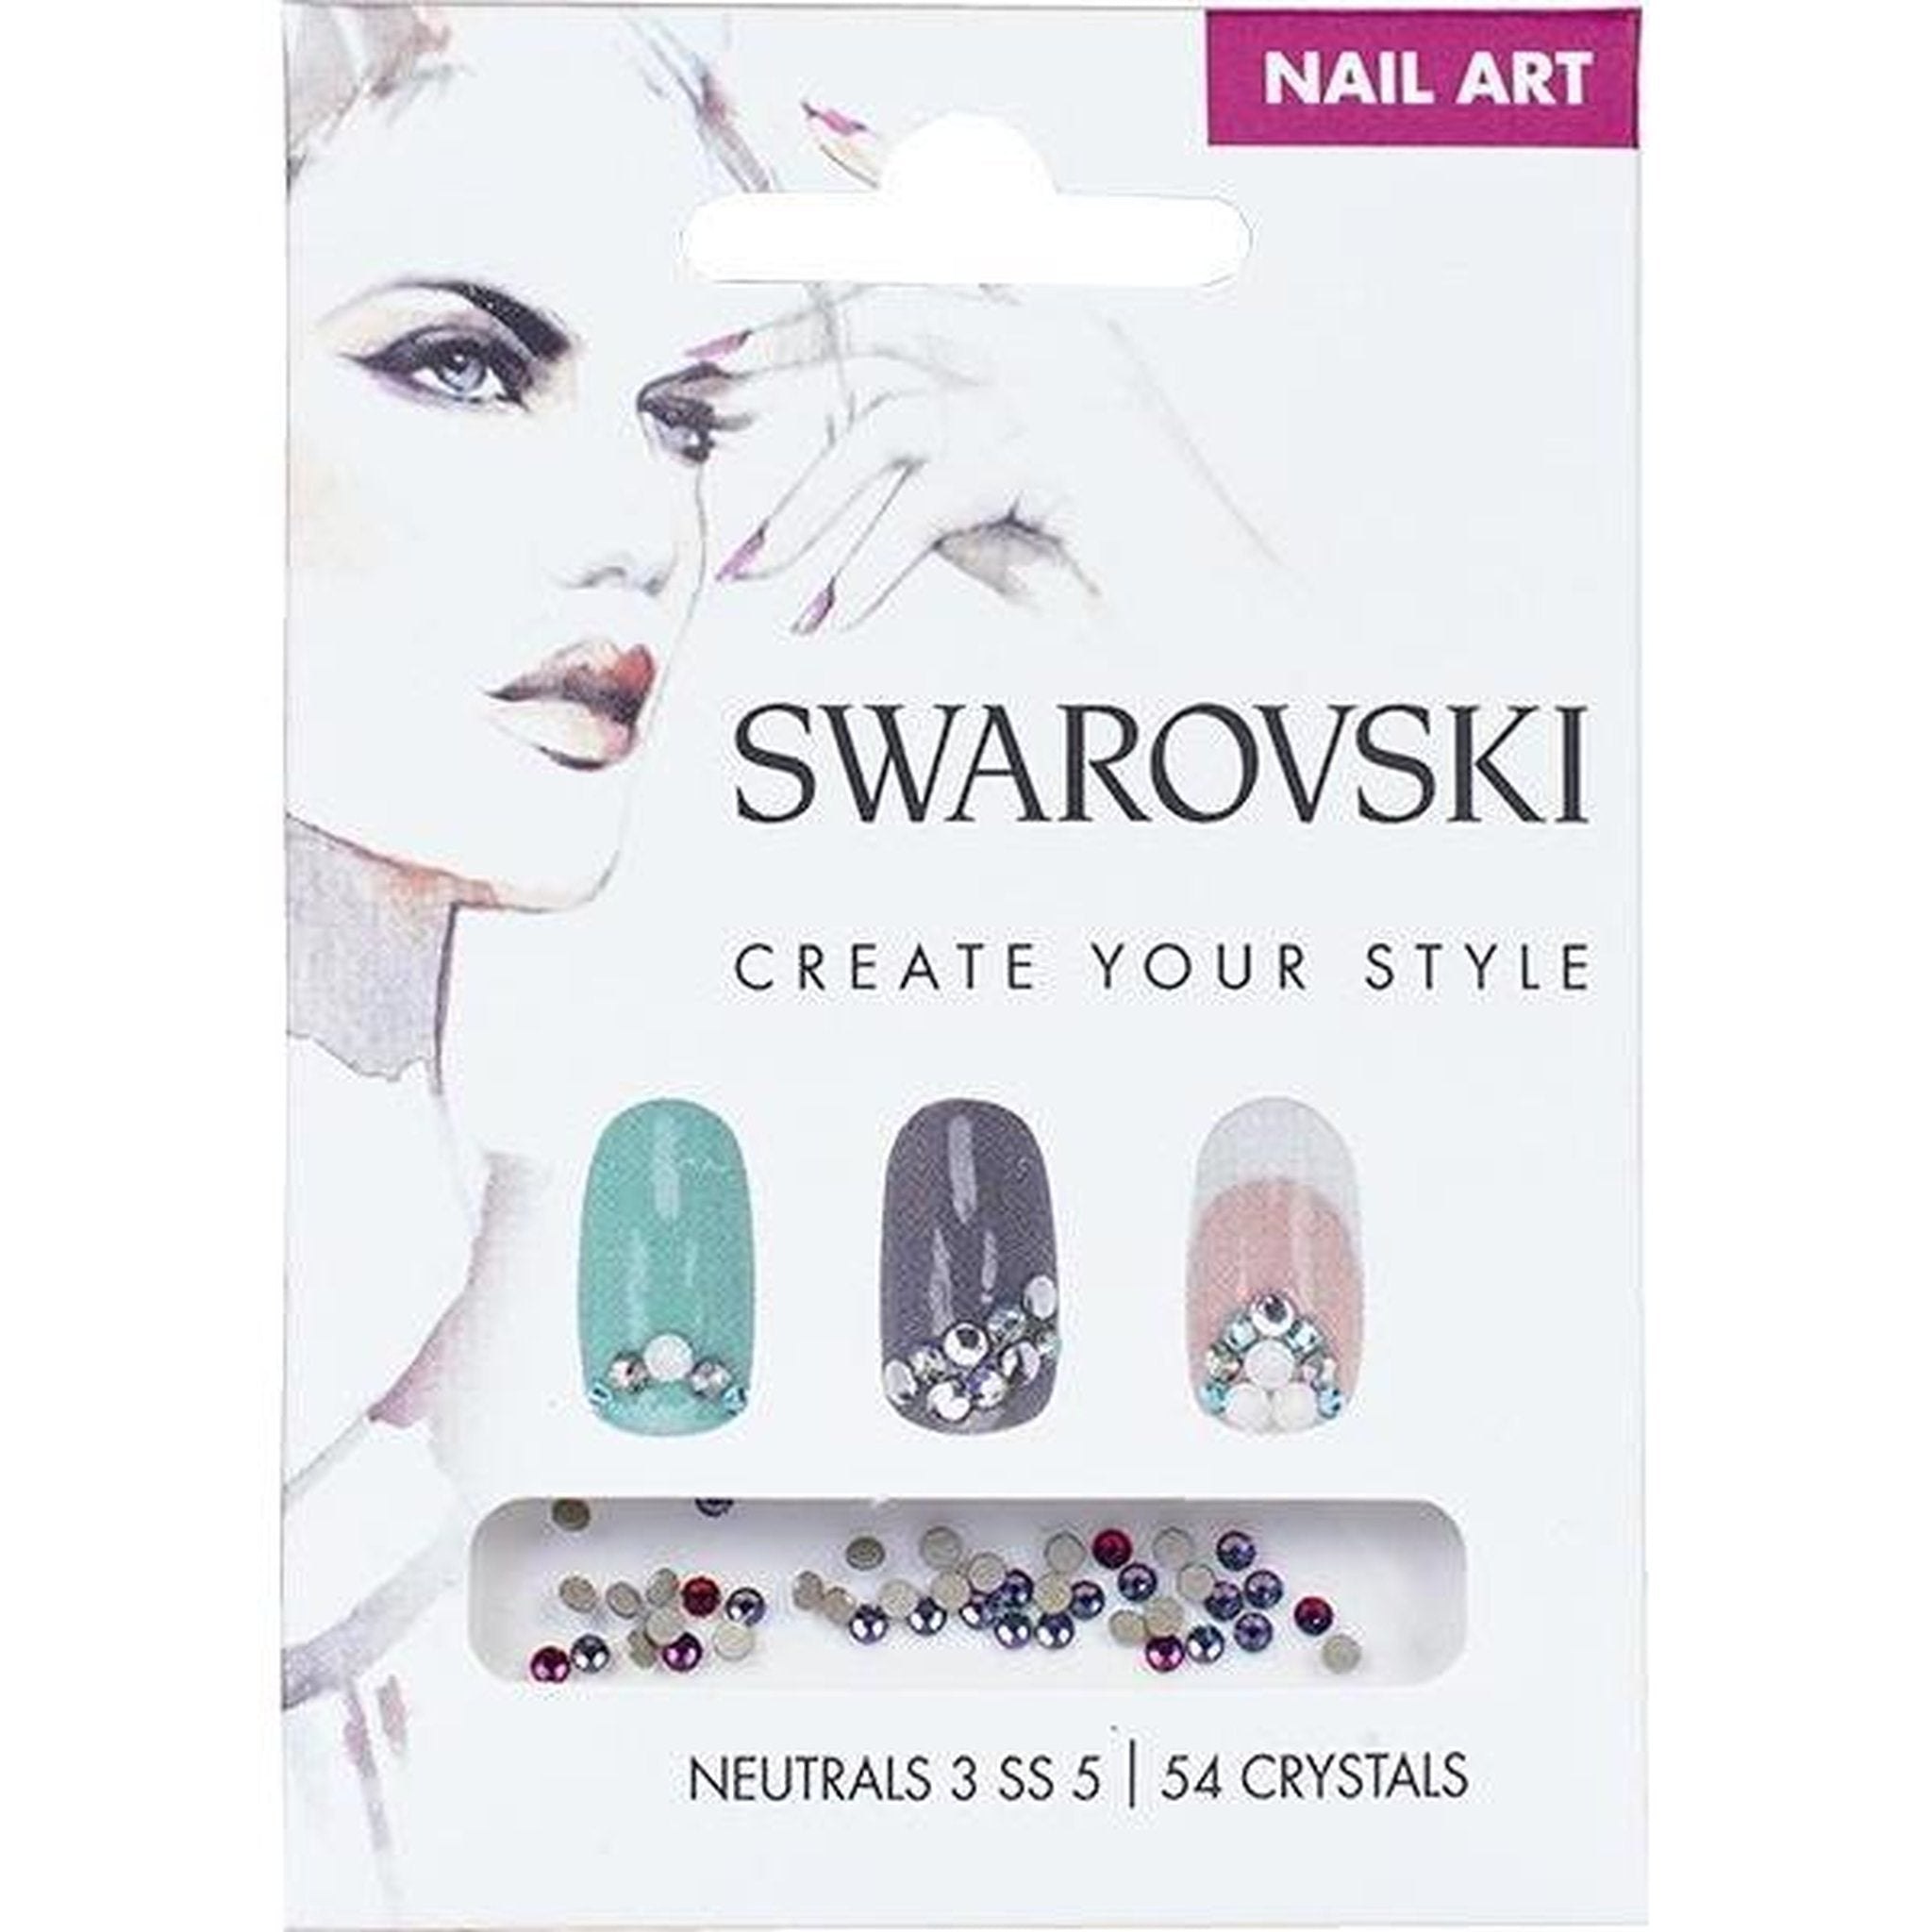 SWAROVSKI NAIL ART LOOSE CRYSTALS - NEUTRAL 3 SS5-Gel Essentialz